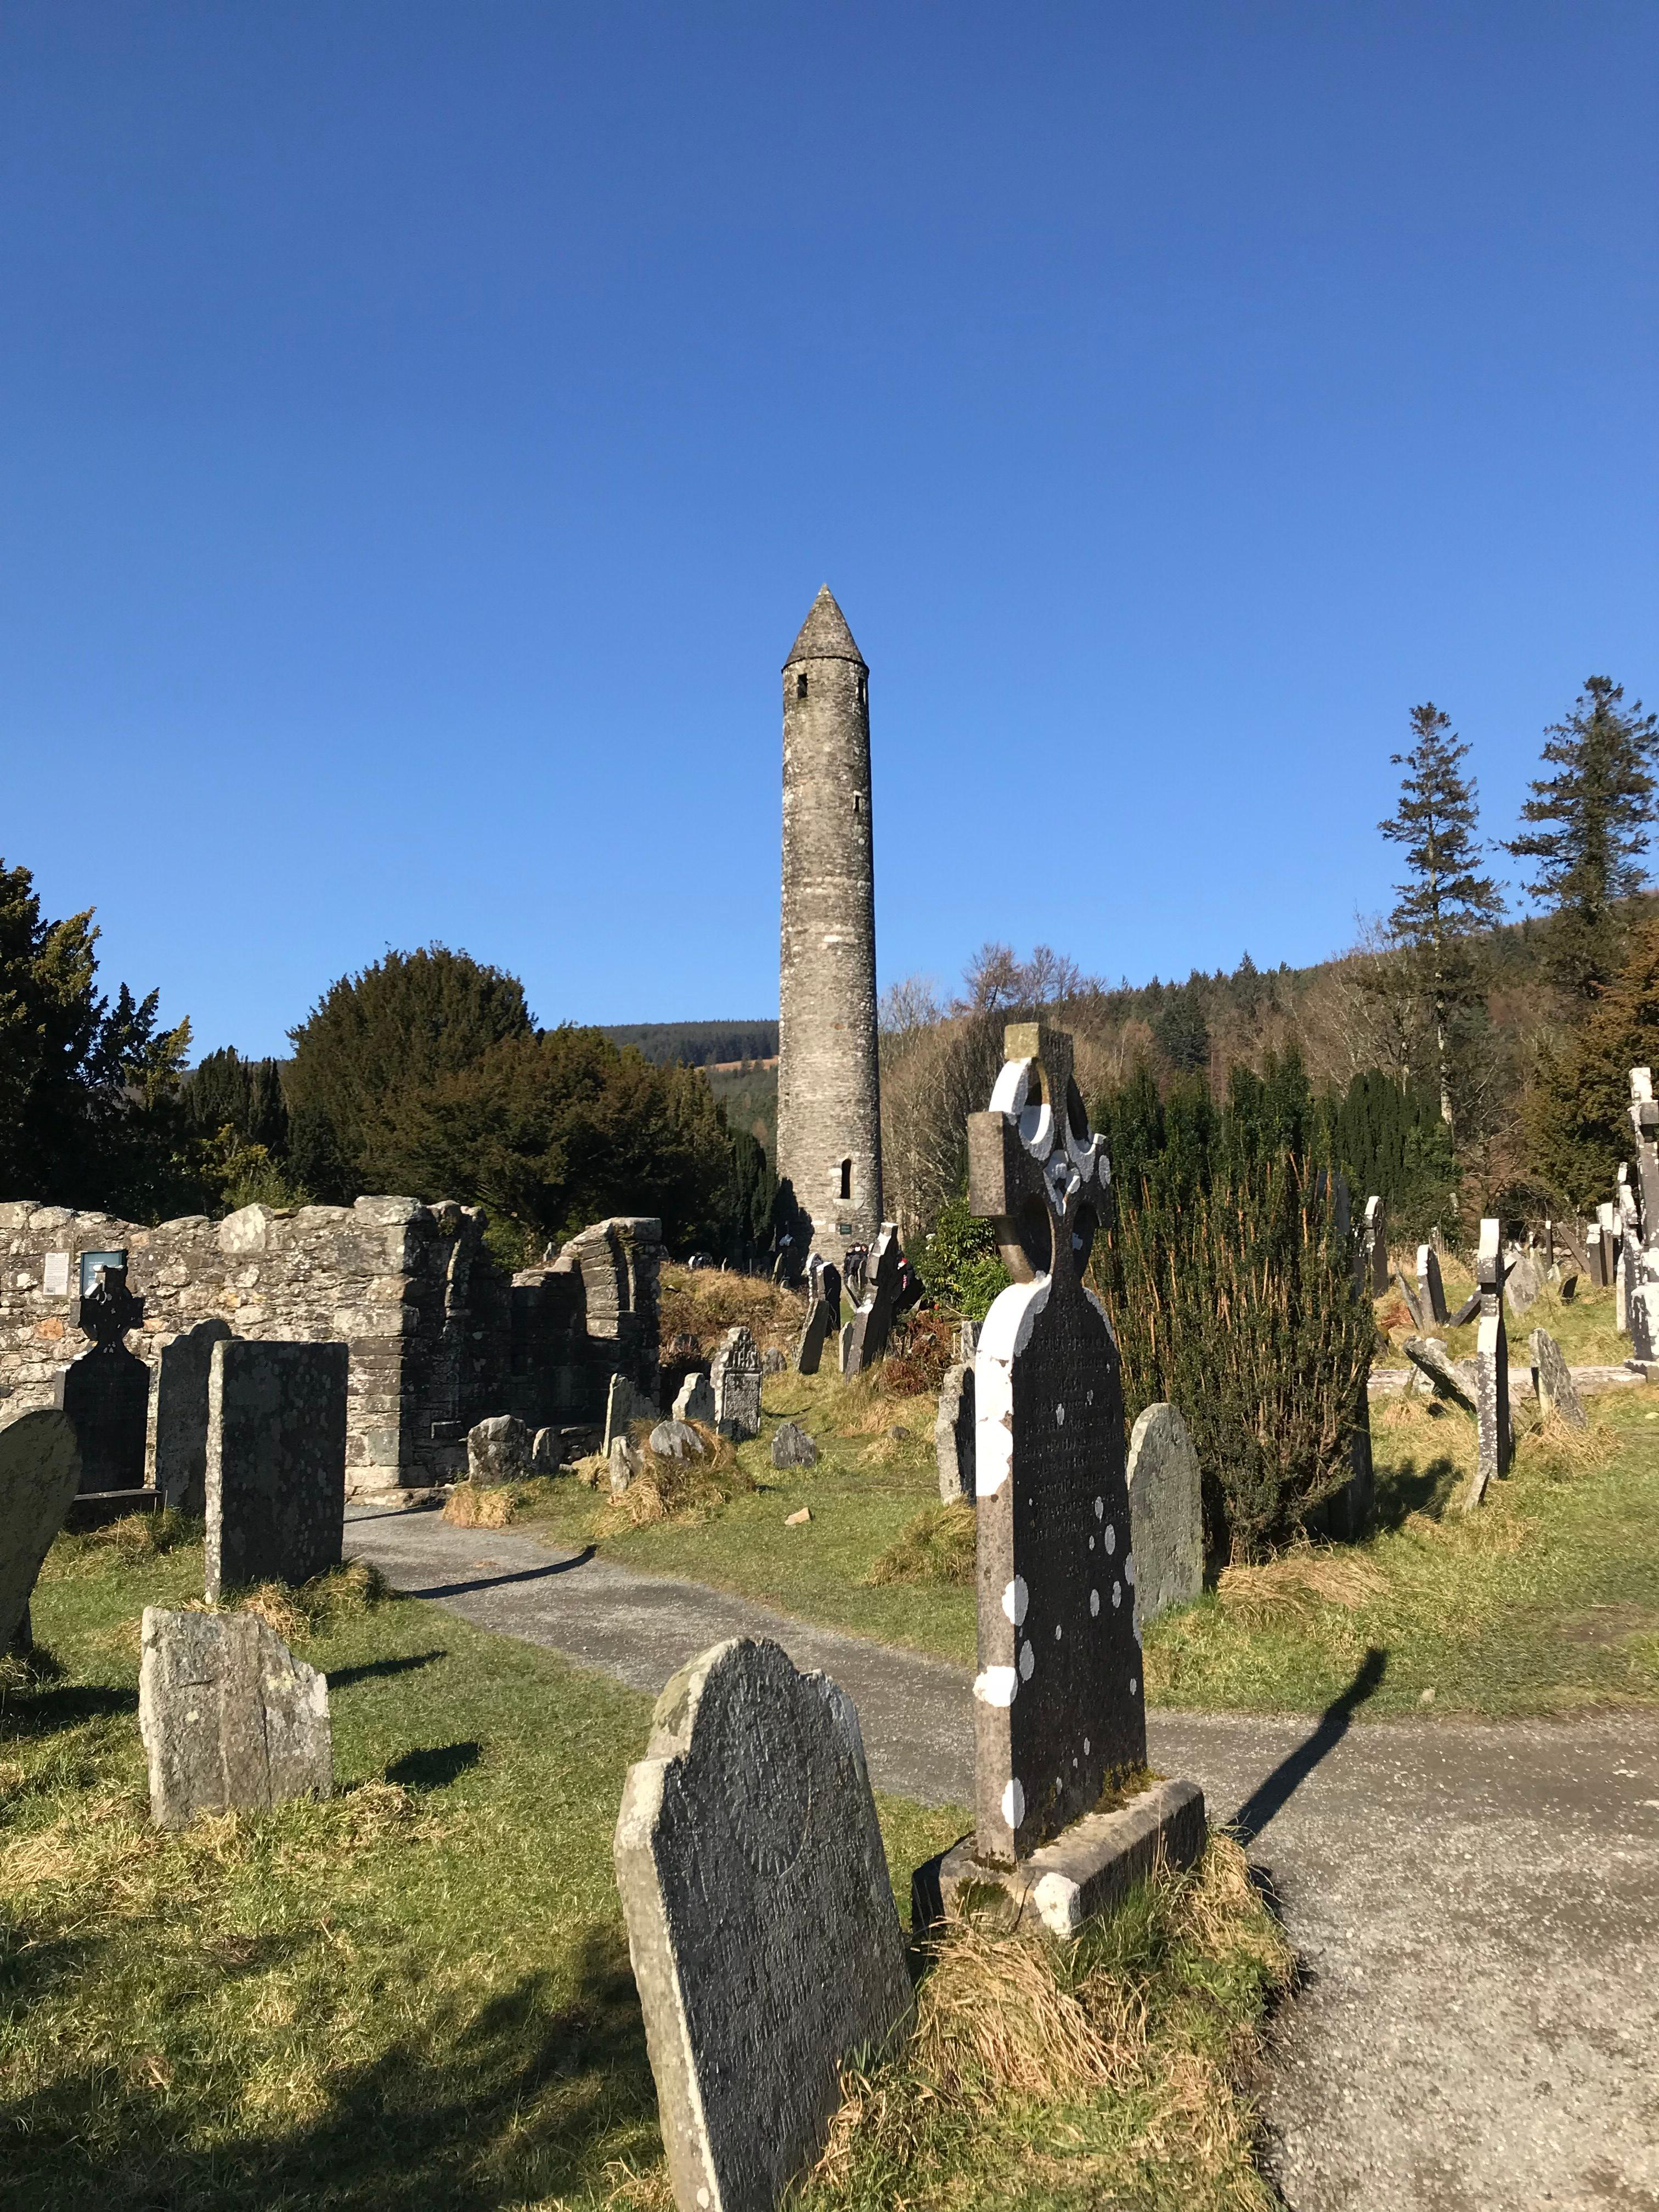 CAPAStudyAbroad_Dublin_Spring2018_From Brandon Mooney - Cemetery and Round Tower of the Monastic City in Glendalough.jpeg